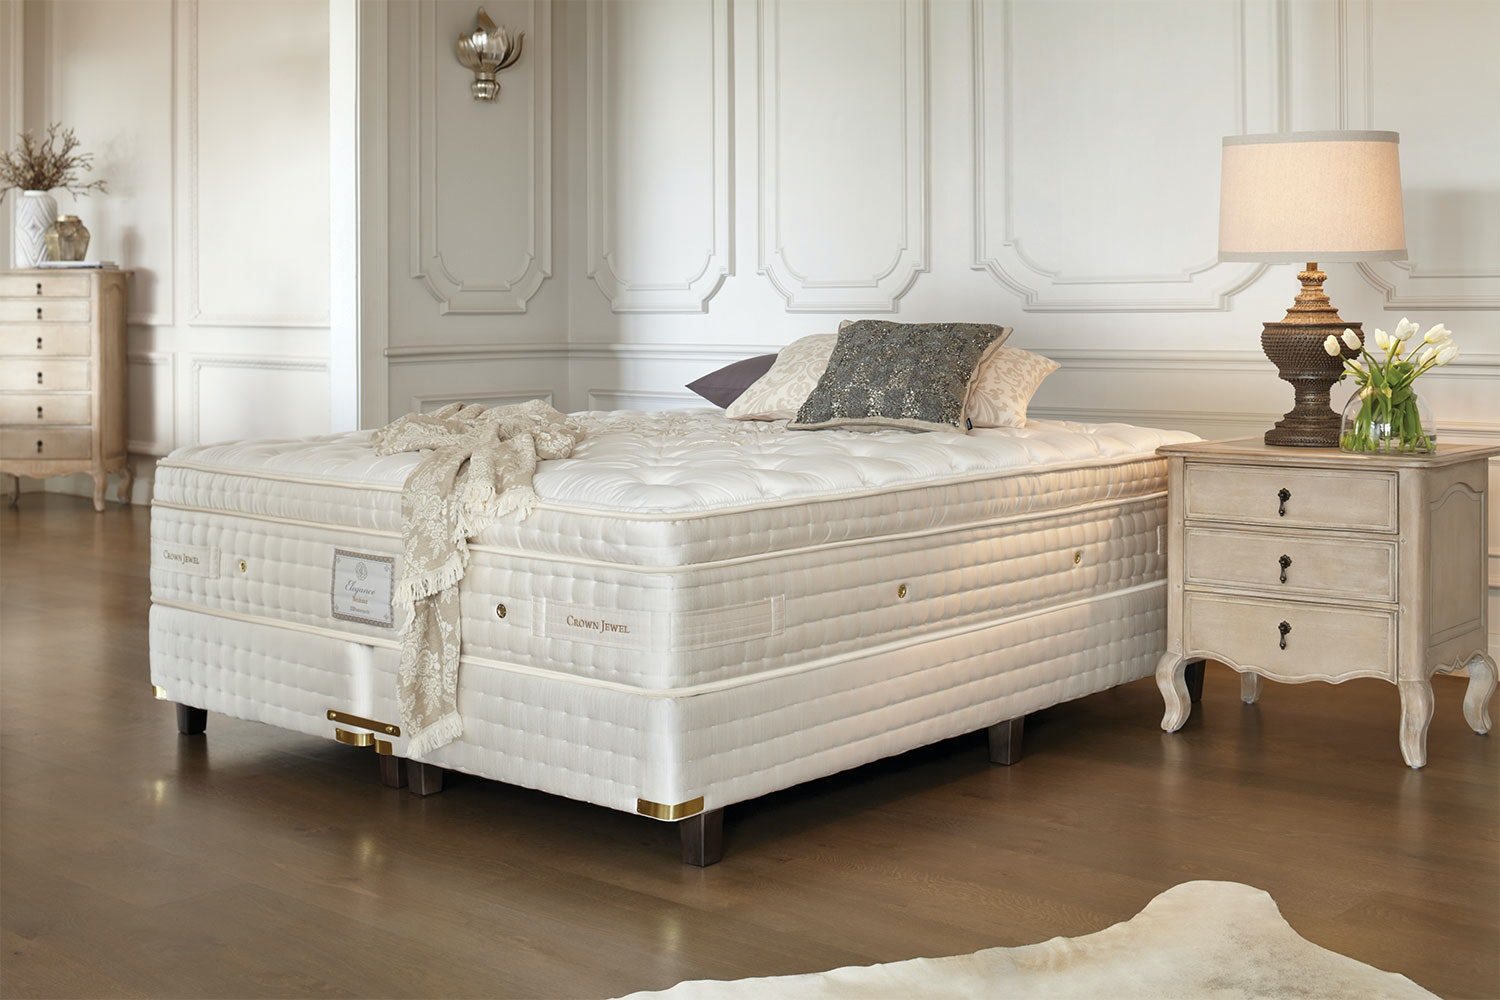 Bordeaux Plush King Bed with Standard Base by Sealy Posturepedic